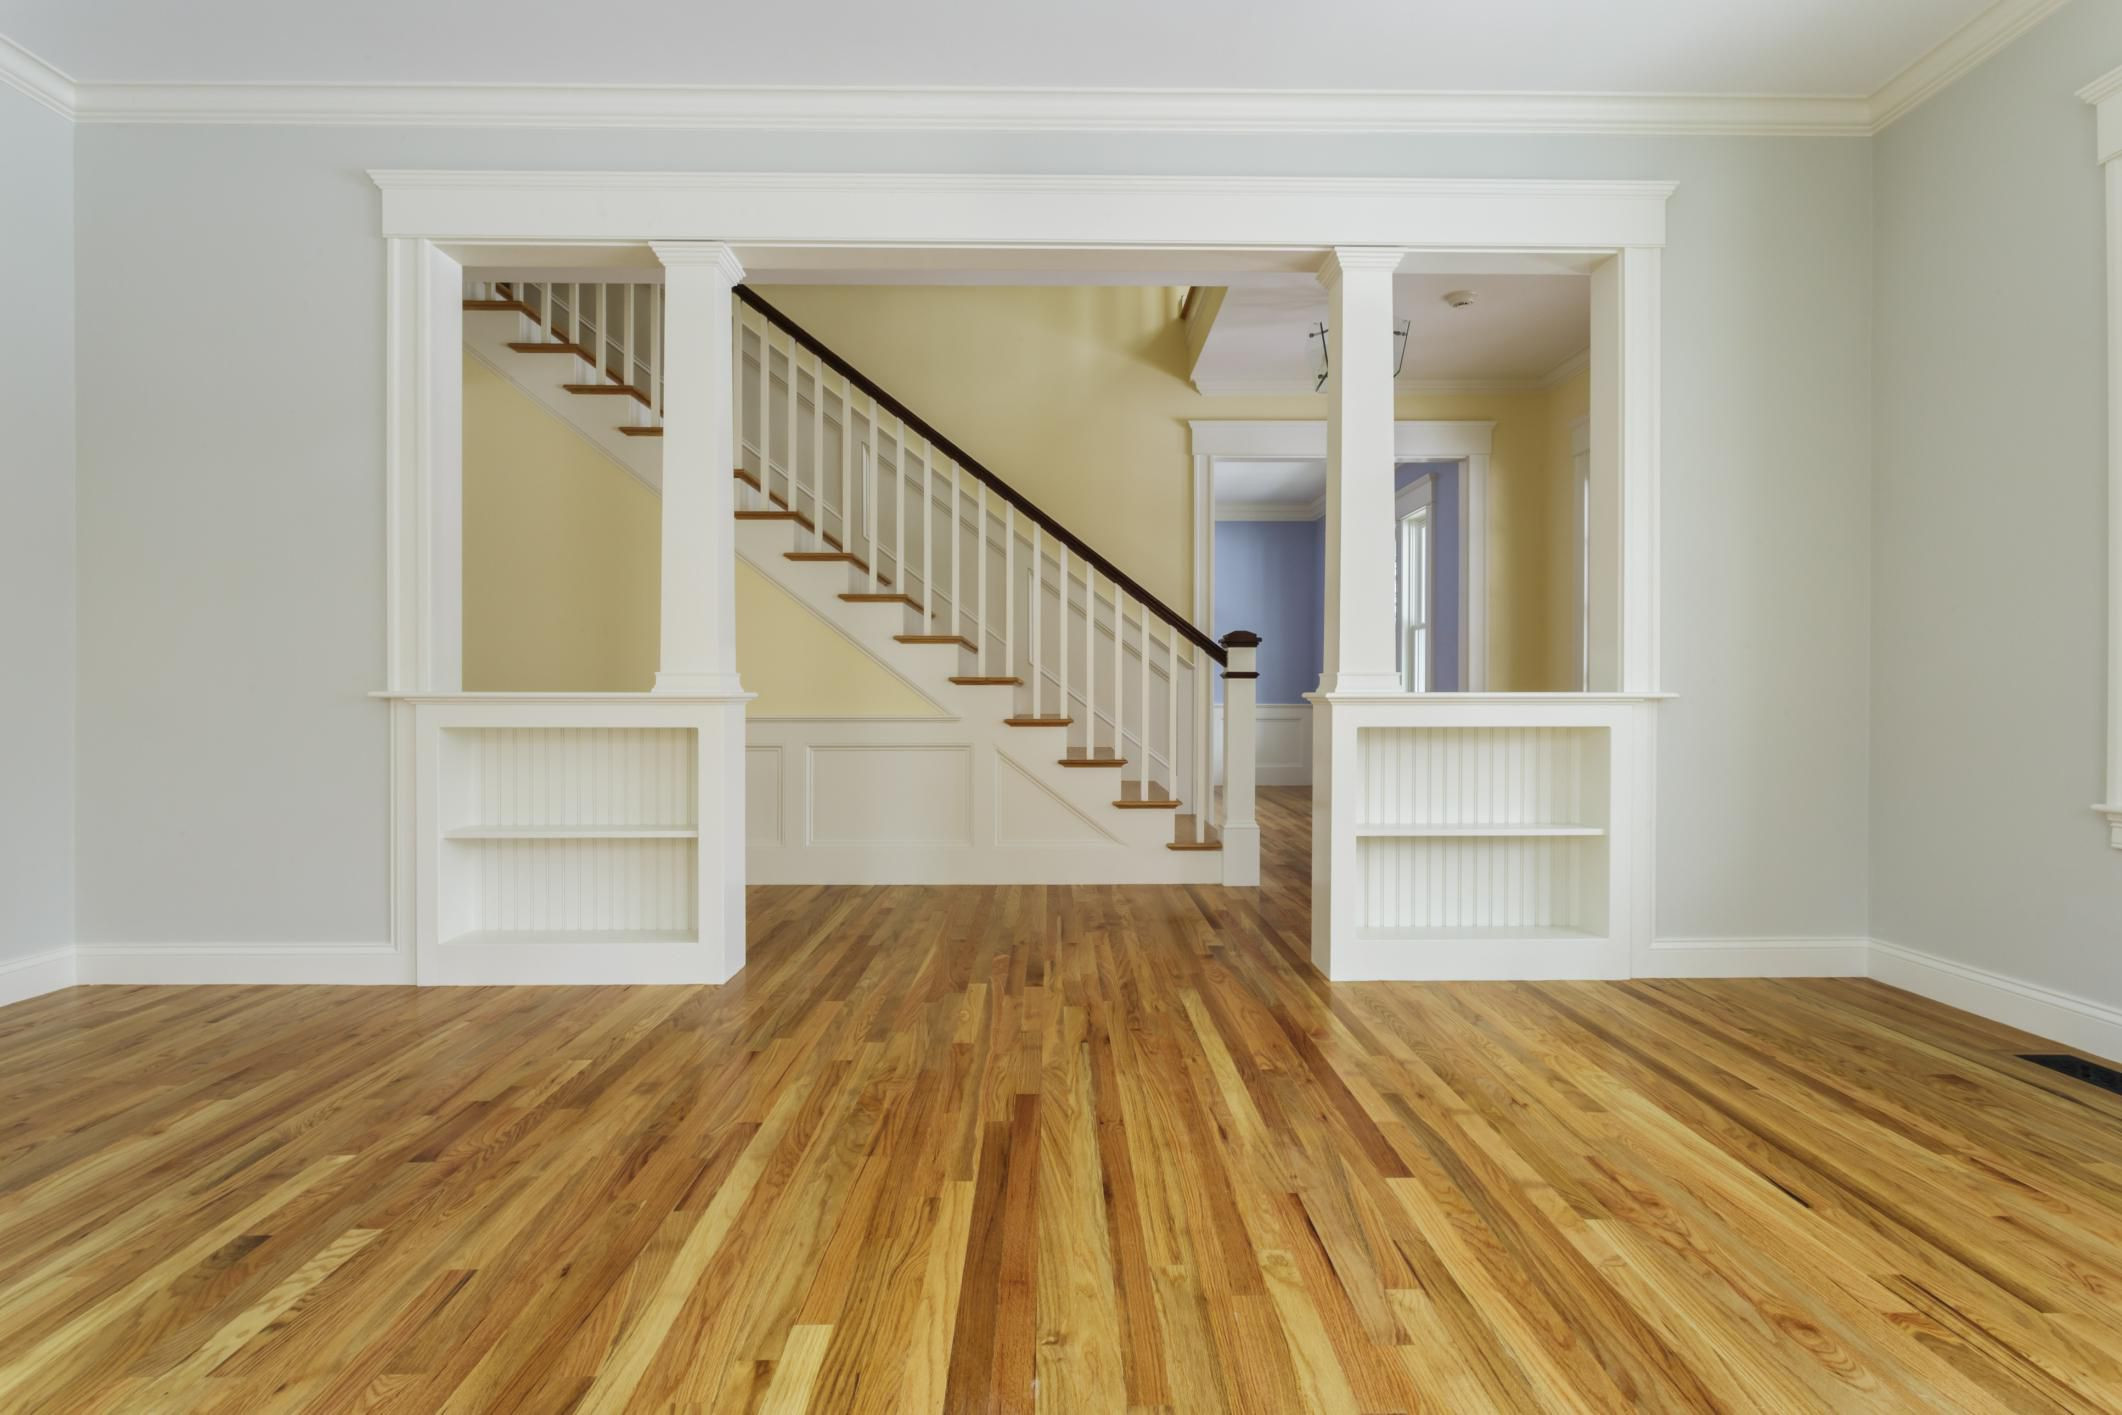 best product to clean engineered hardwood floors of guide to solid hardwood floors in 168686571 56a49f213df78cf772834e24